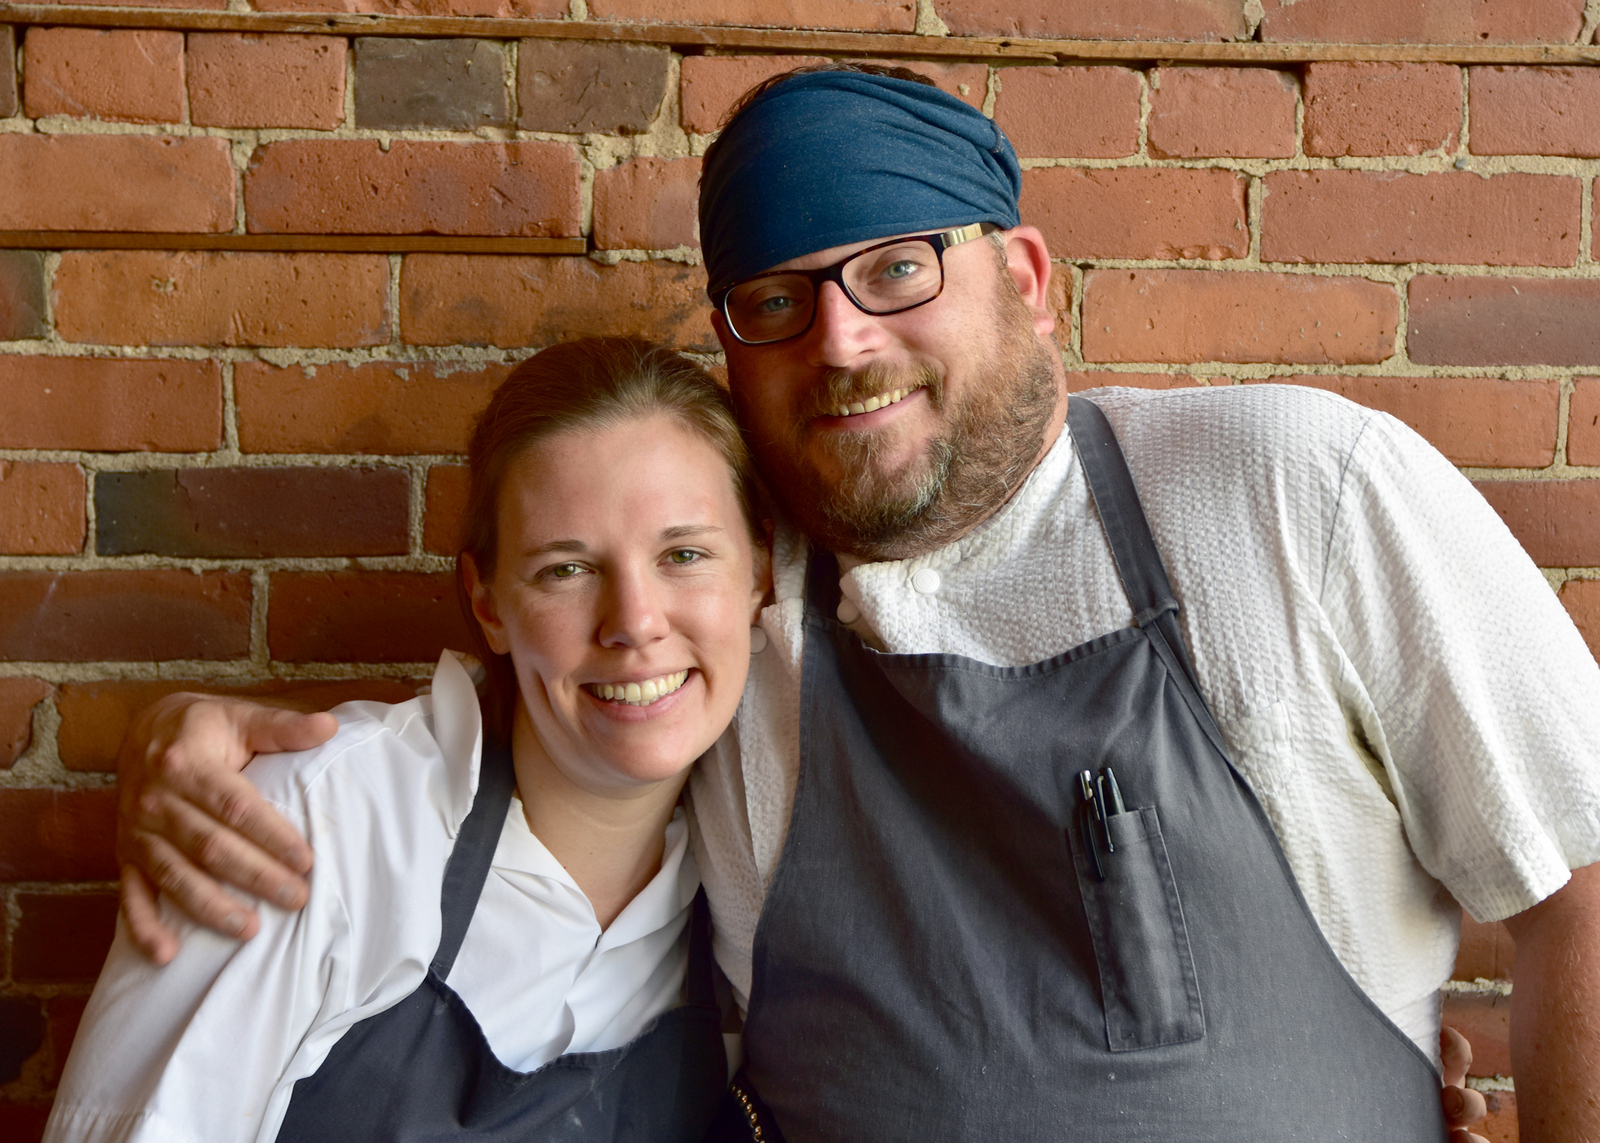 Ellen and Steven Gedra of The Black Sheep will donate half of their proceeds on Tuesday to Evergreen Health. (John Carocci/Evergreen Health)